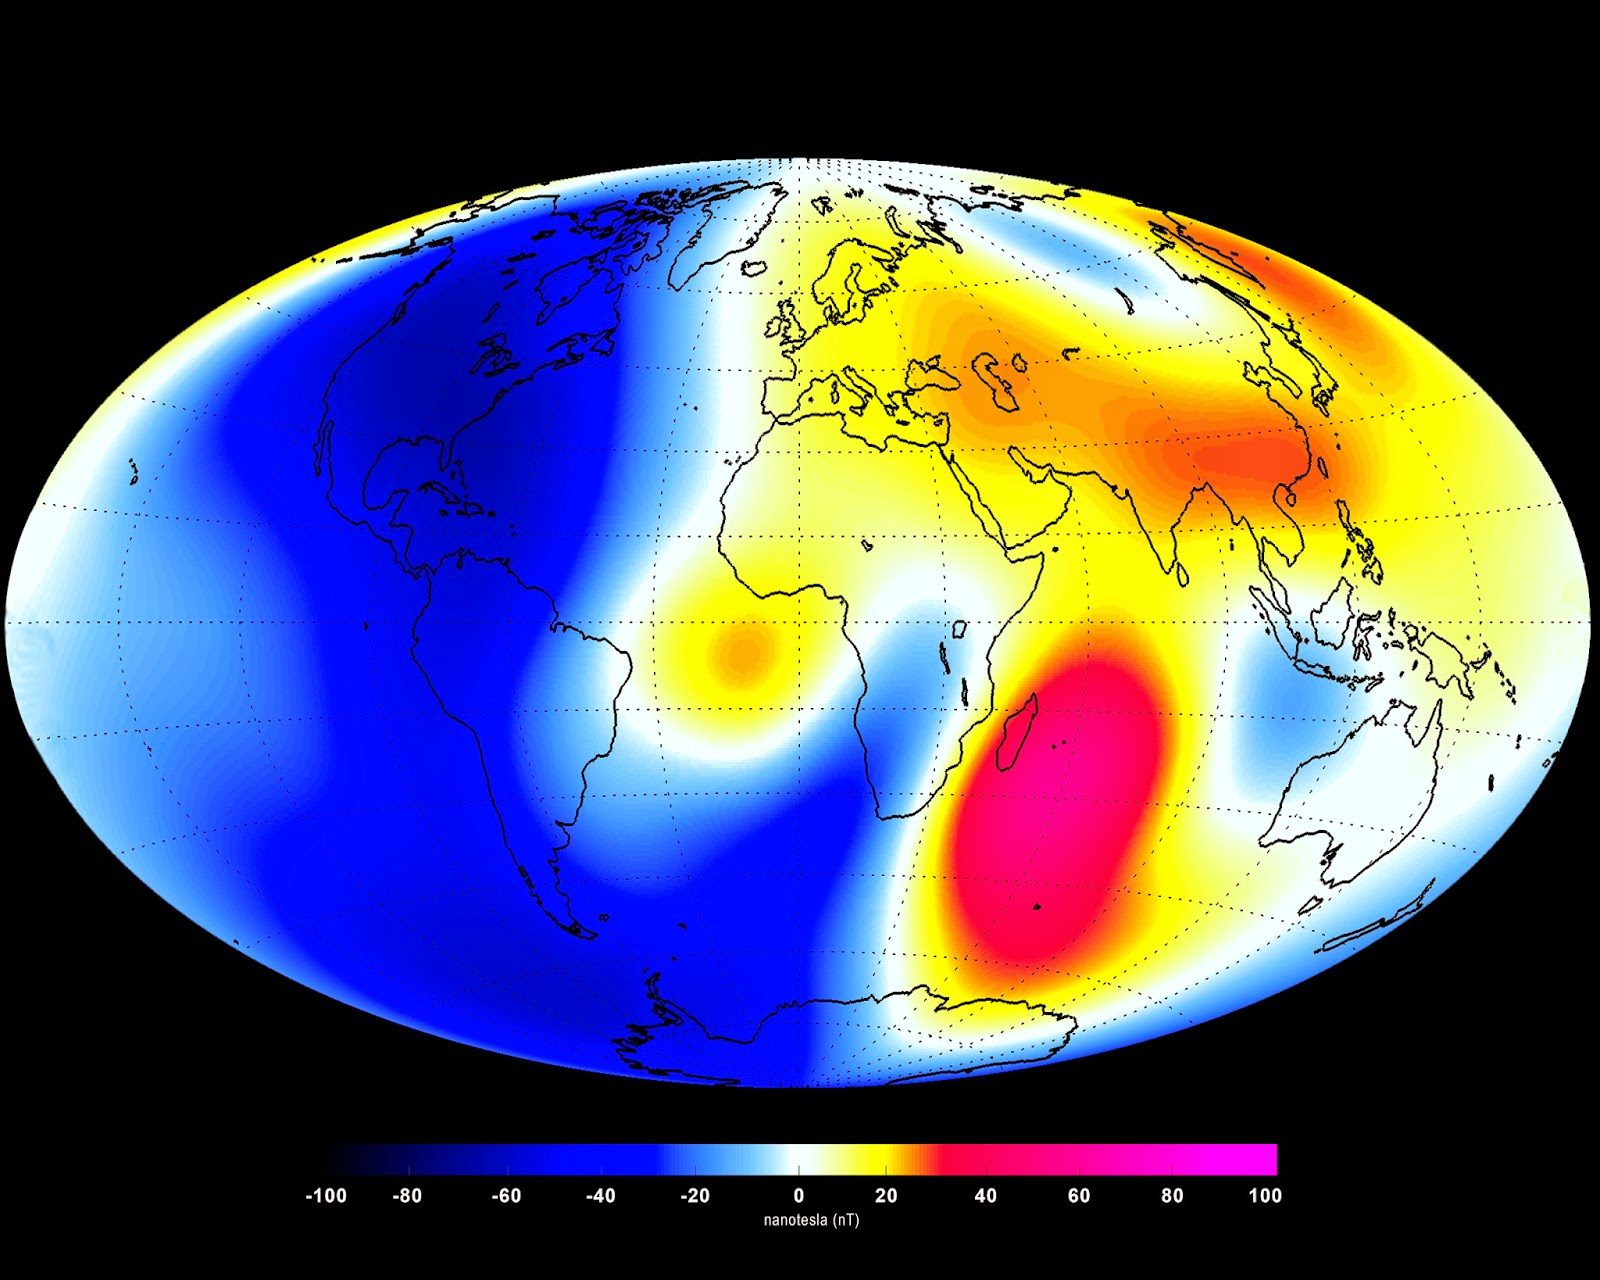 Changes in Earth's magnetic field from January to June 2014 as measured by the Swarm constellation of satellites. These changes are based on the magnetic signals that stem from Earth's core. Shades of red represent areas of strengthening, while blues show areas of weakening over the 6-month period. Credit: ESA/DTU Space